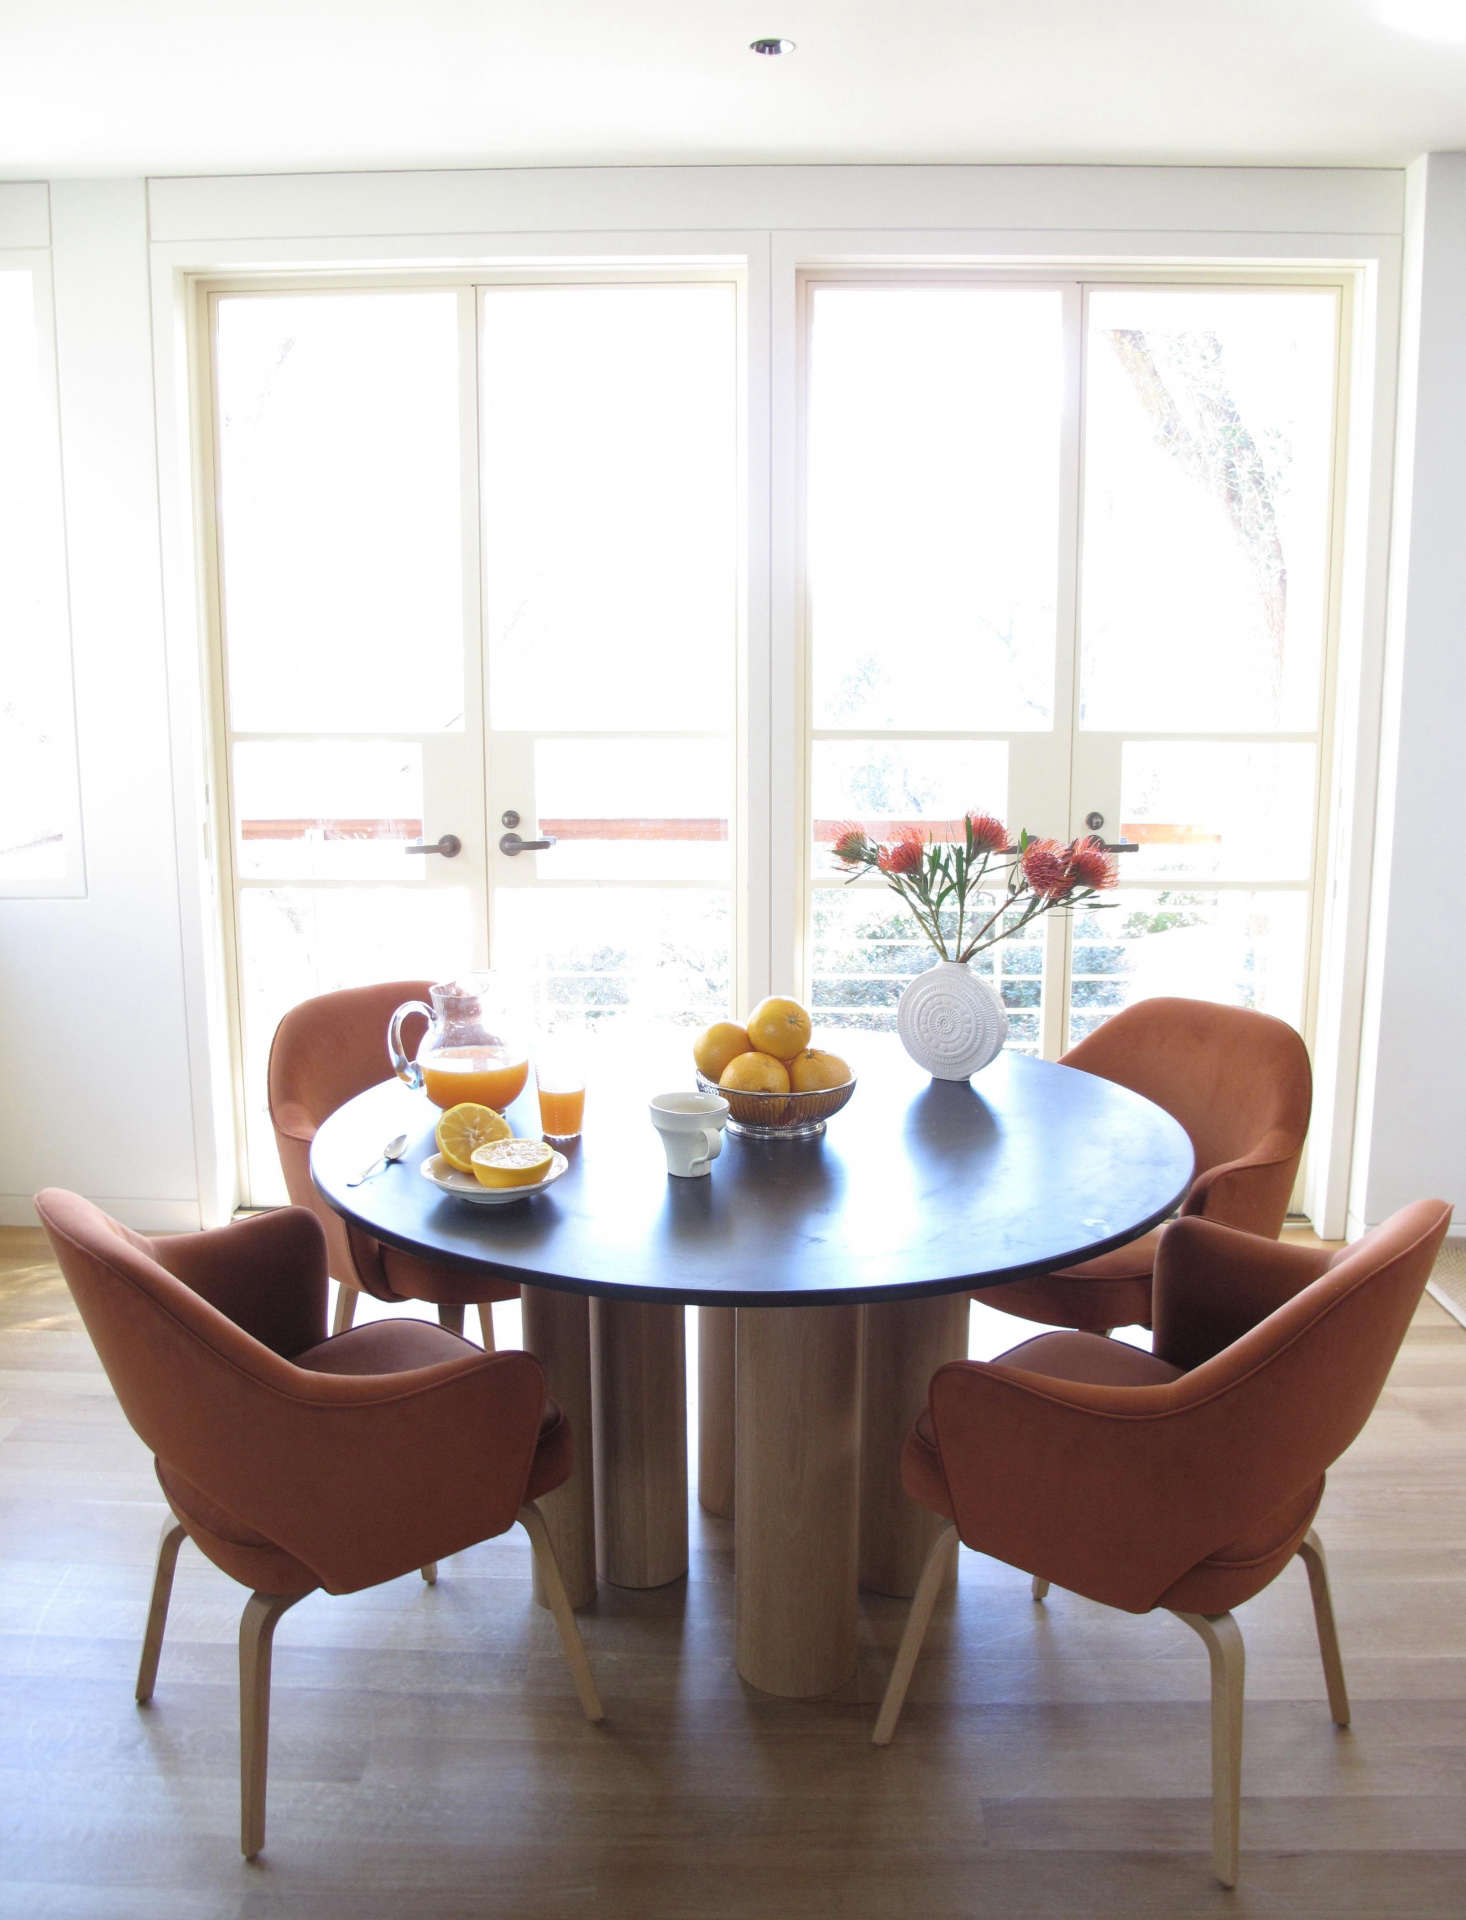 Breakfast Room, Montecito: Michael Paladino and I worked on this custom tablePseemingly random oak columns supporting a slate top. The Saarinen chairs are a favorite of mine, and hold up well to small children upholstered here in ultra-suede. Photo: Laura Clayton Baker